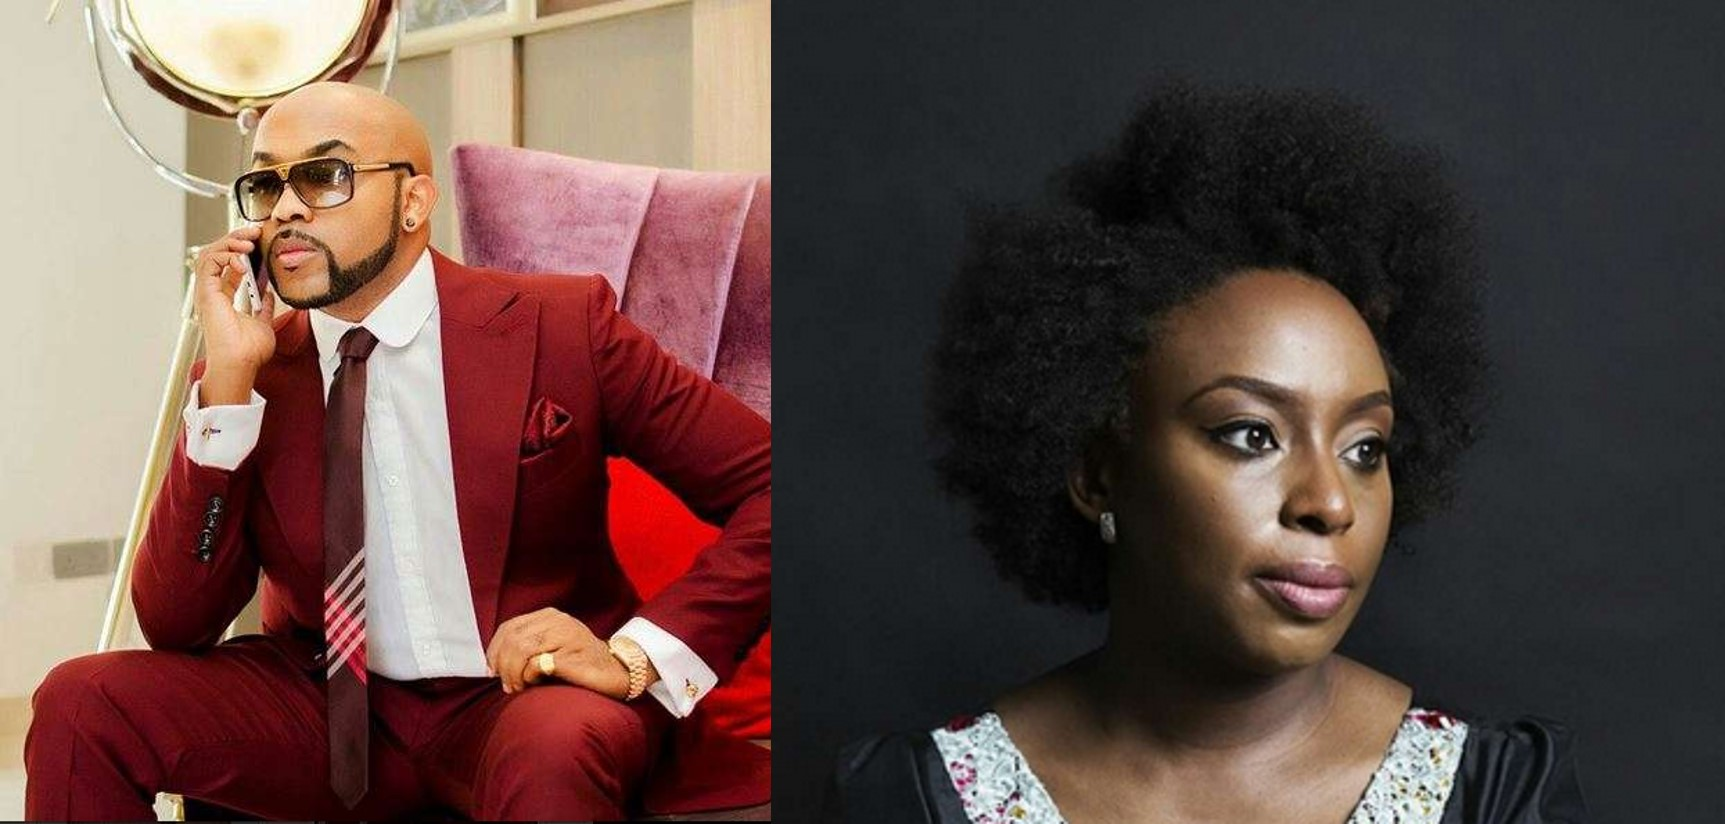 Banky W reacts to Chimamanda Adichie's comment on men holding the door for women